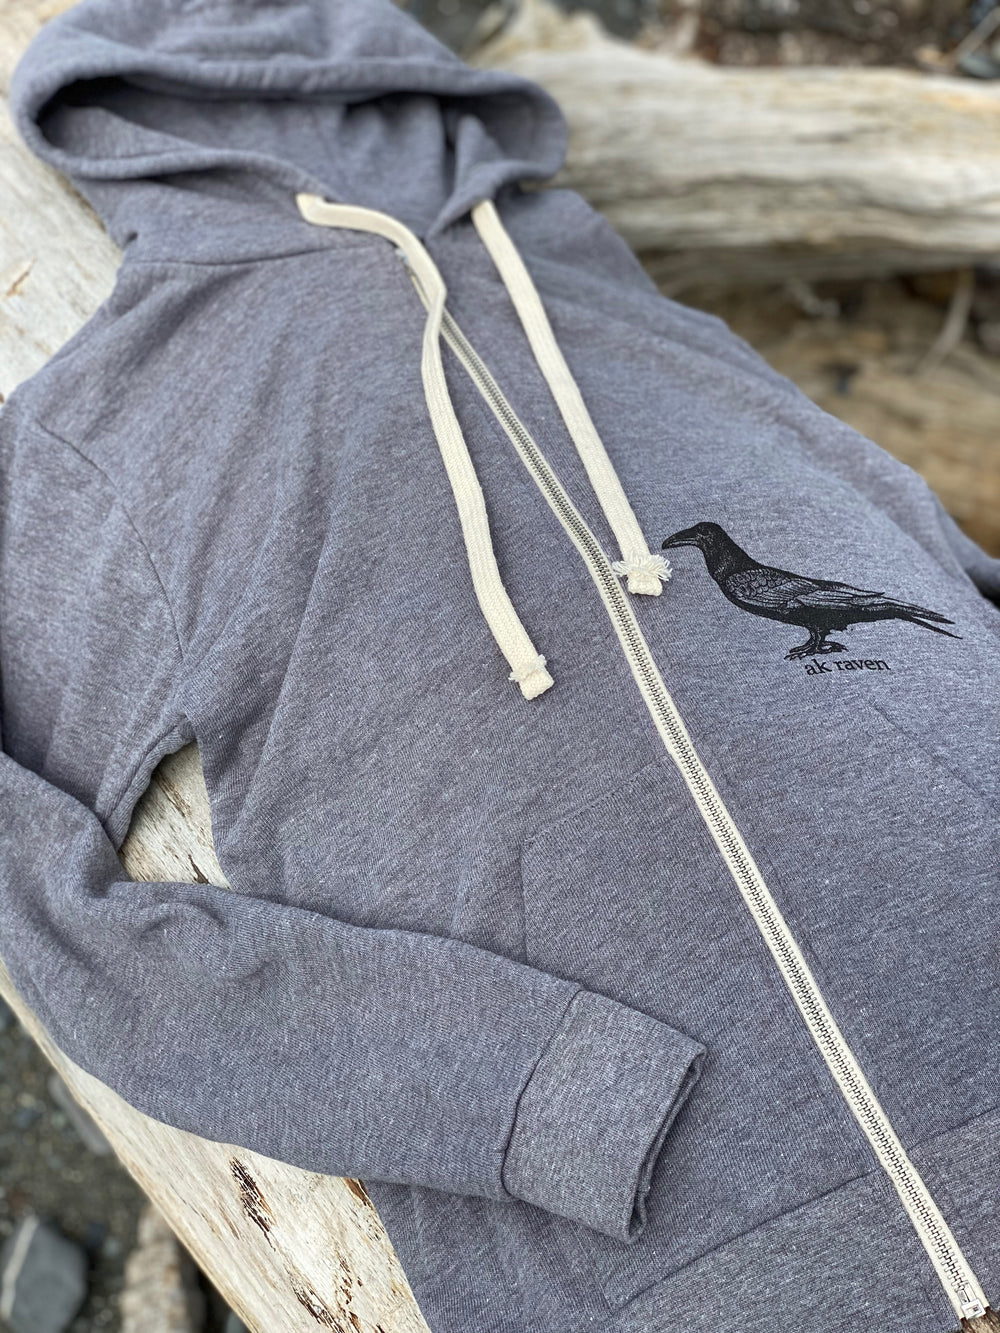 Roost Raven French Terry Zipped Hoody $65